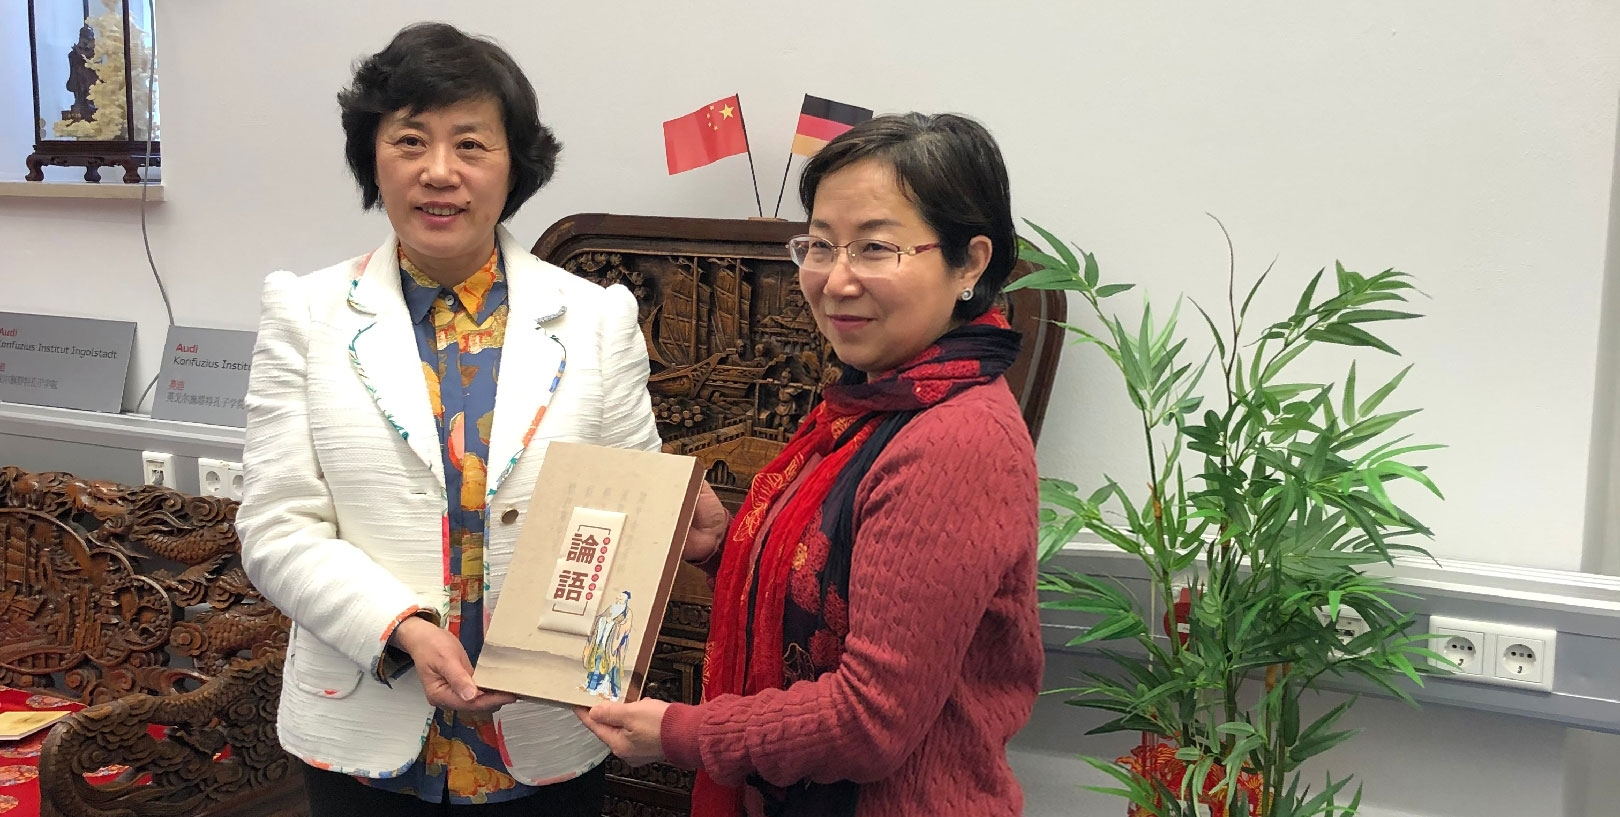 Ms-ZHANG-Xiaomei-left-head-of-the-delegation-presents-a-satin-book-of-Analect-by-Confucius-to-AKII